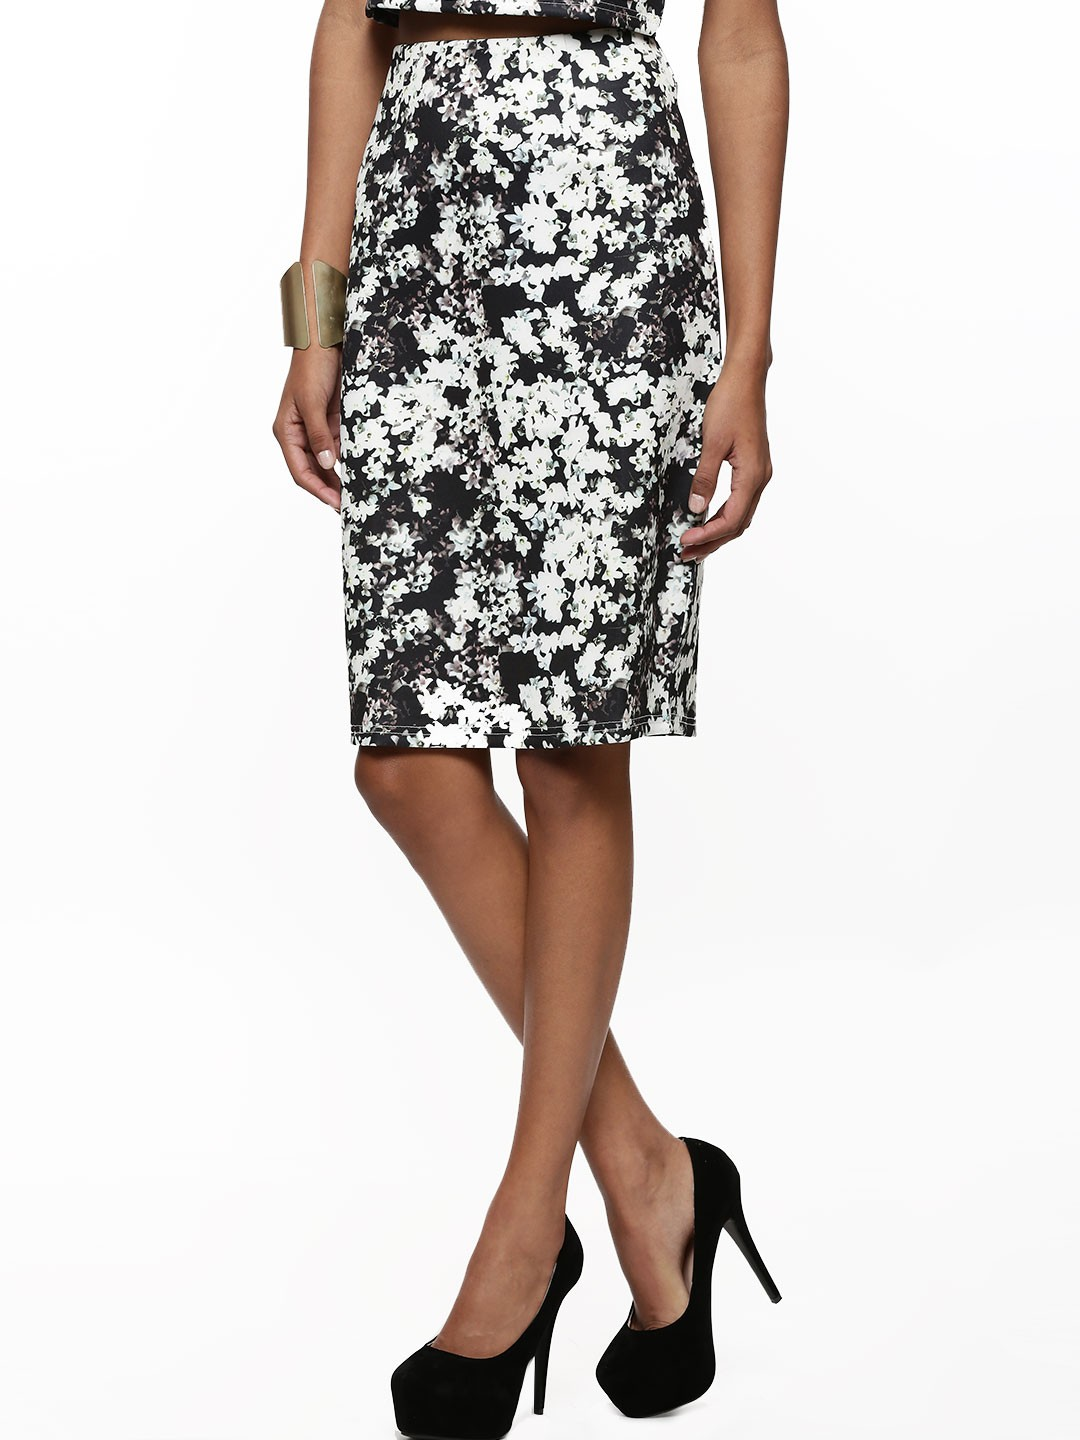 buy fashion union floral print pencil skirt for